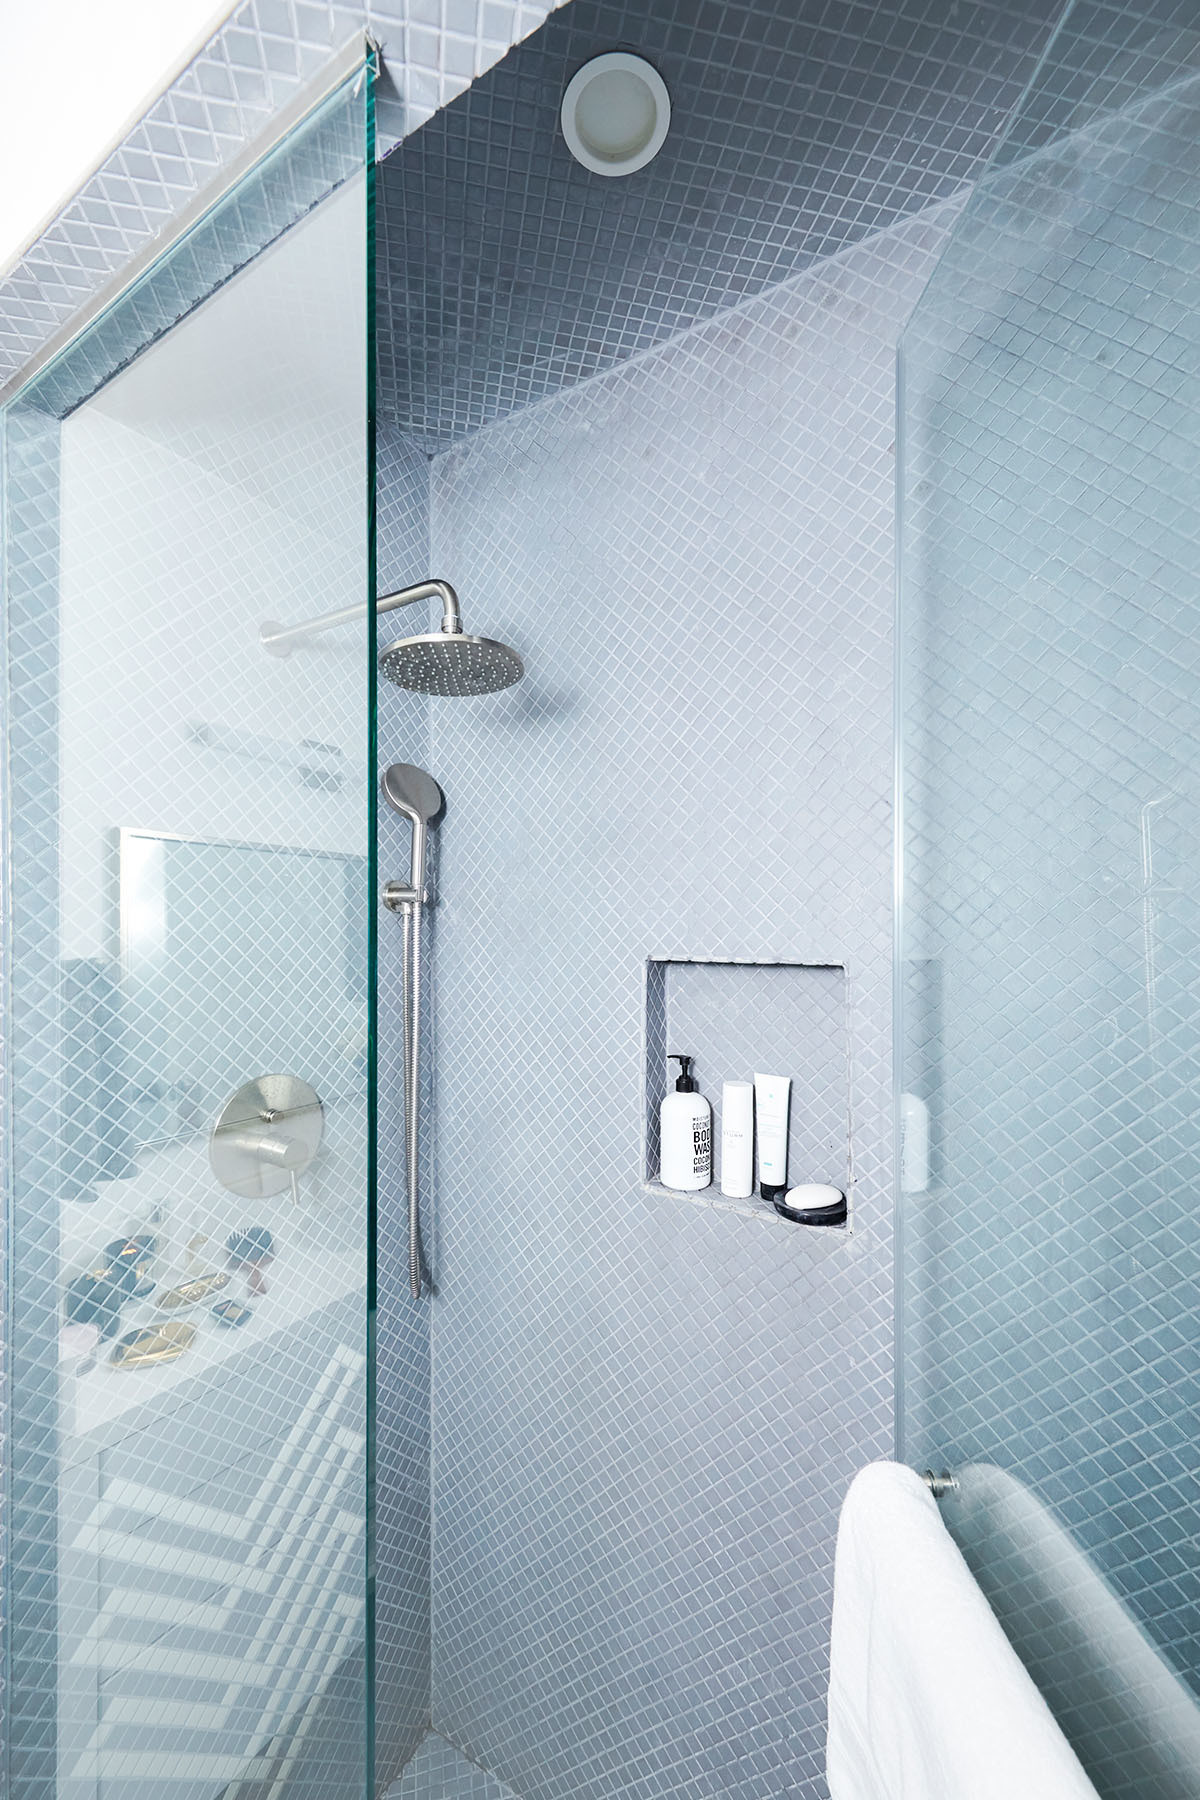 Pale blue tiles in the pared-back bathroom space creates an ultimately soothing vibe.